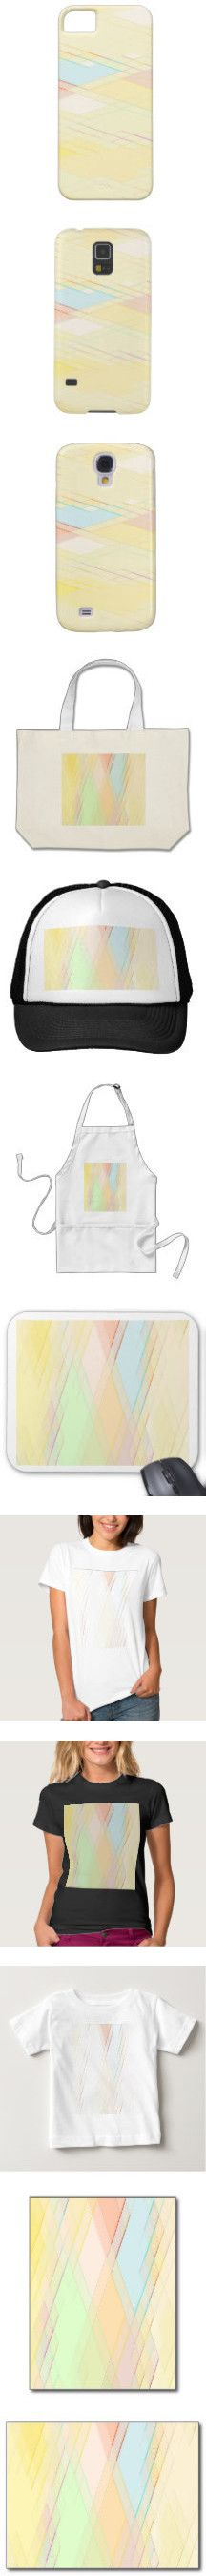 #art #graphic #design #iphone #ipod #ipad, #samsung #galaxy #s4 #s5 #s6 #case #cover #tech #geek #gadget #skin #colors #mug #bag #pillow #stationery, #apple #mac #laptop #sleeve #pullover #sweat #shirt #tank #top #hoody #kids #children #boys #girls #men #women #ladies #light #home #office #style #fashion #accessory #for #her #him #gift #want #need #print #canvas #framed, #Robert #S. #Lee